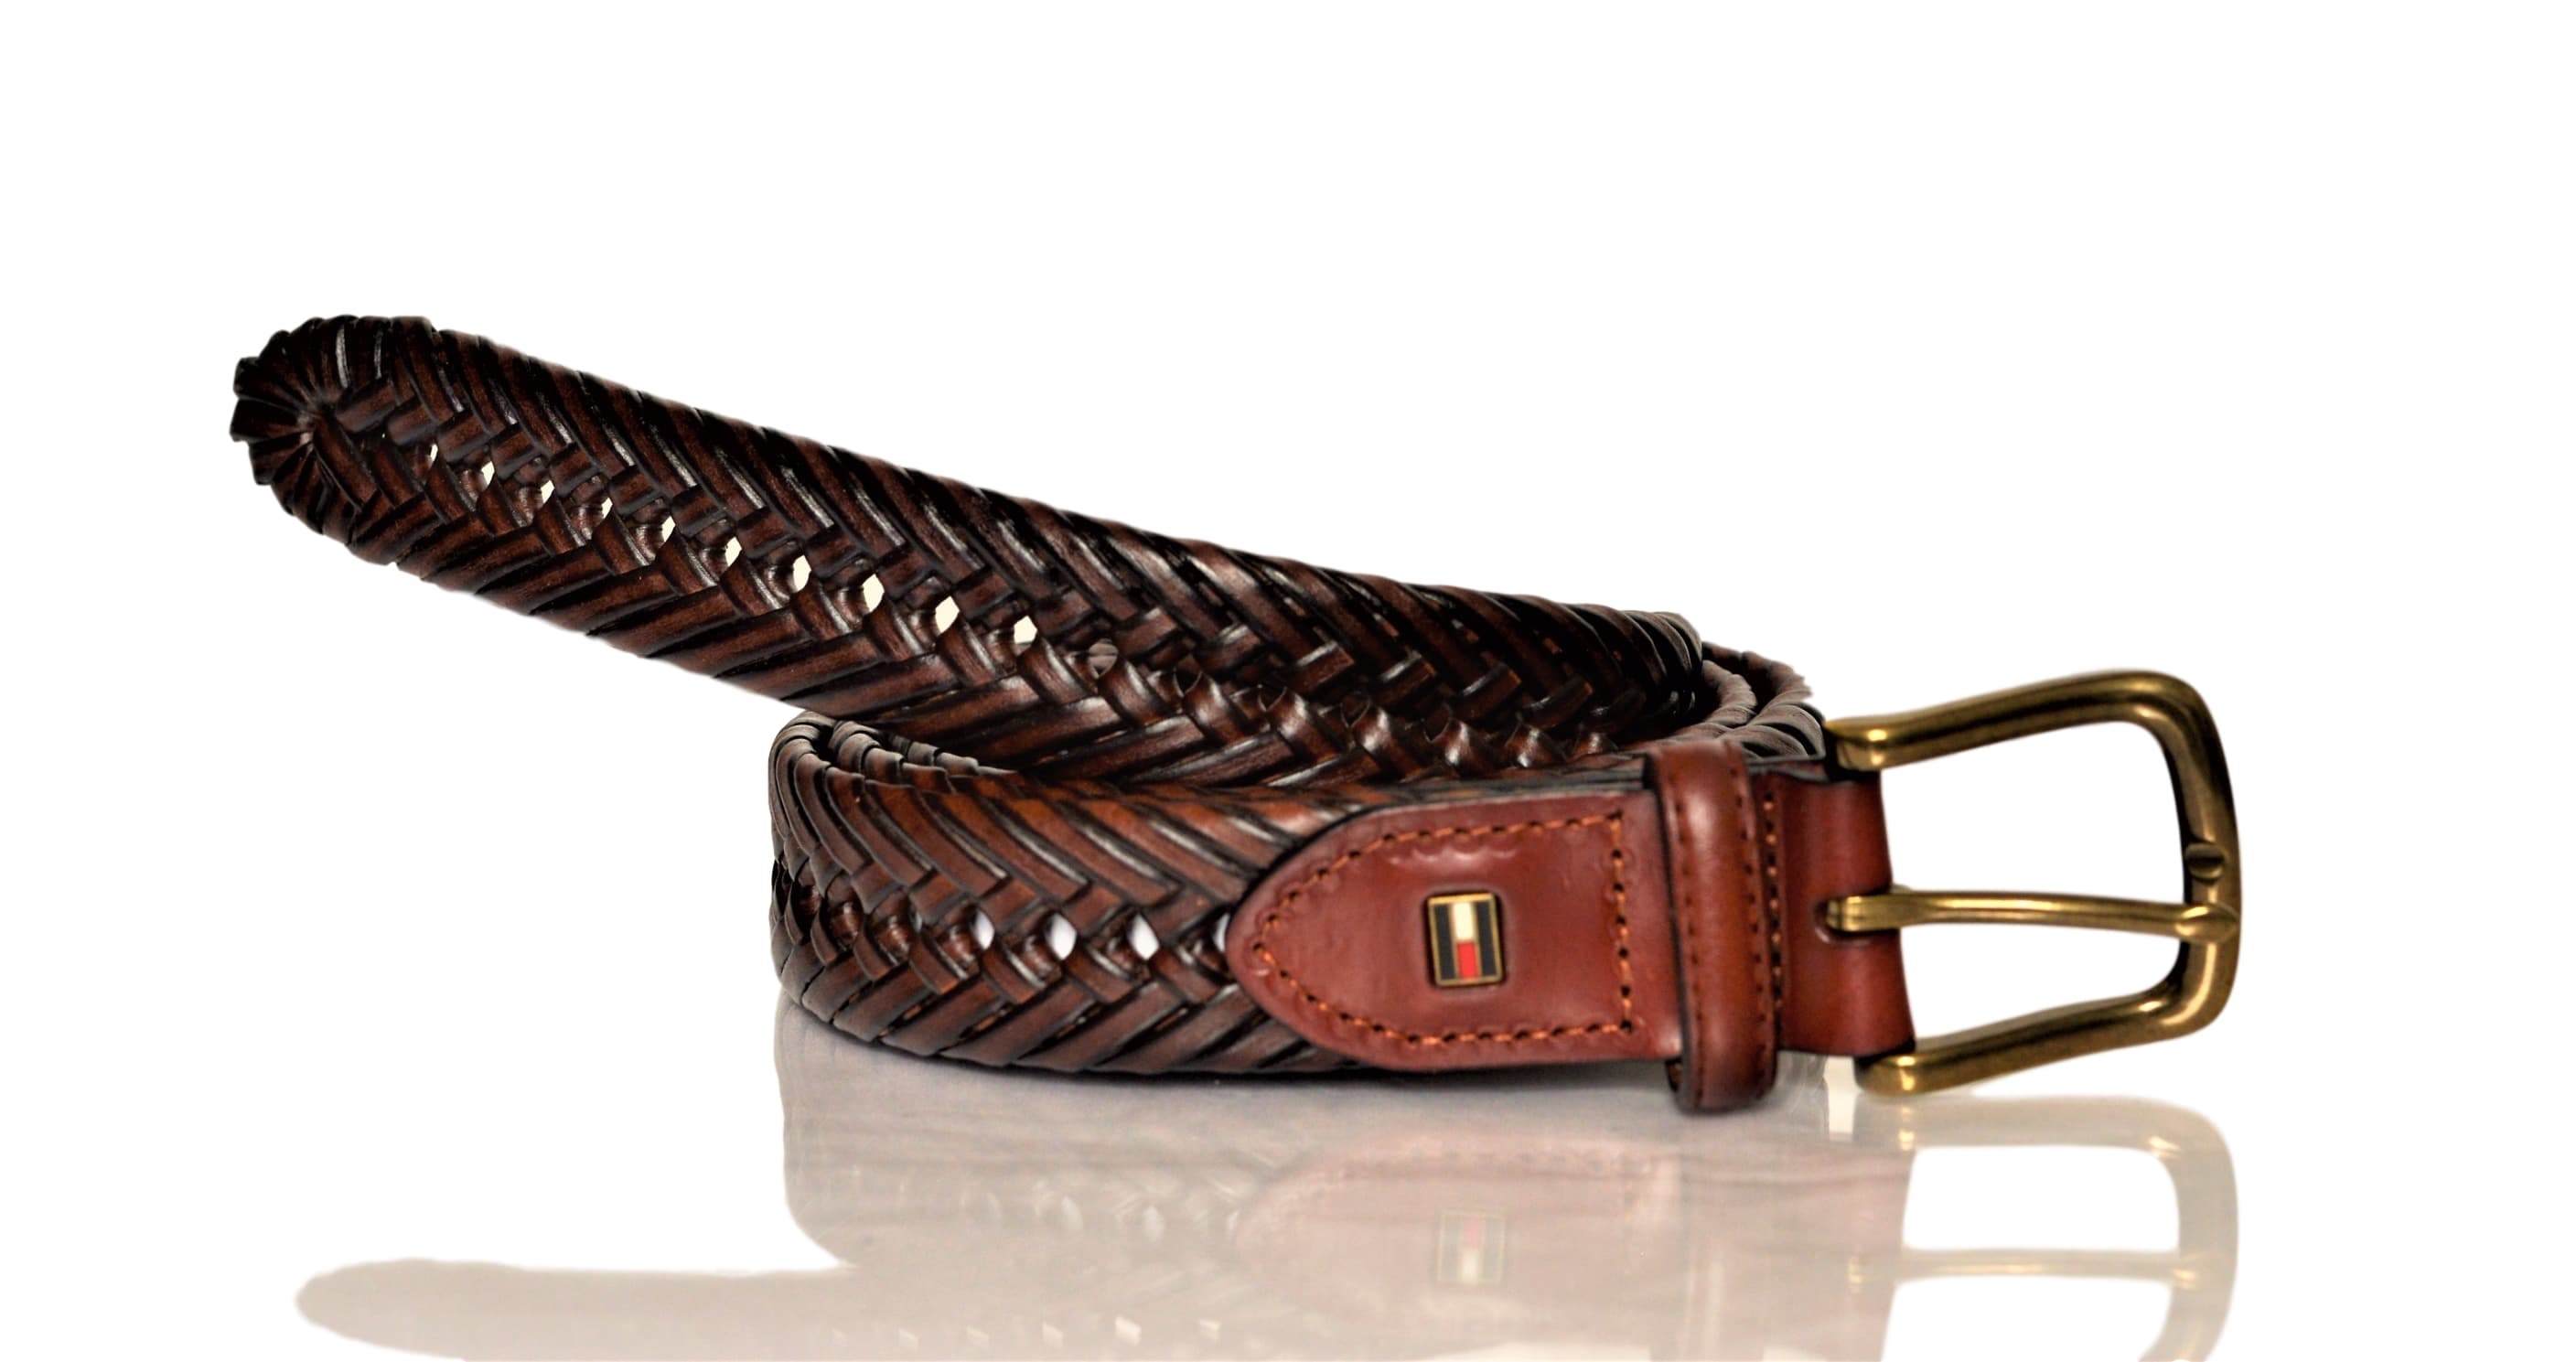 Tommy Hilfiger Accessories 38mm Reversible Belt With Other Fashion Accessorie Jewelry & Watches